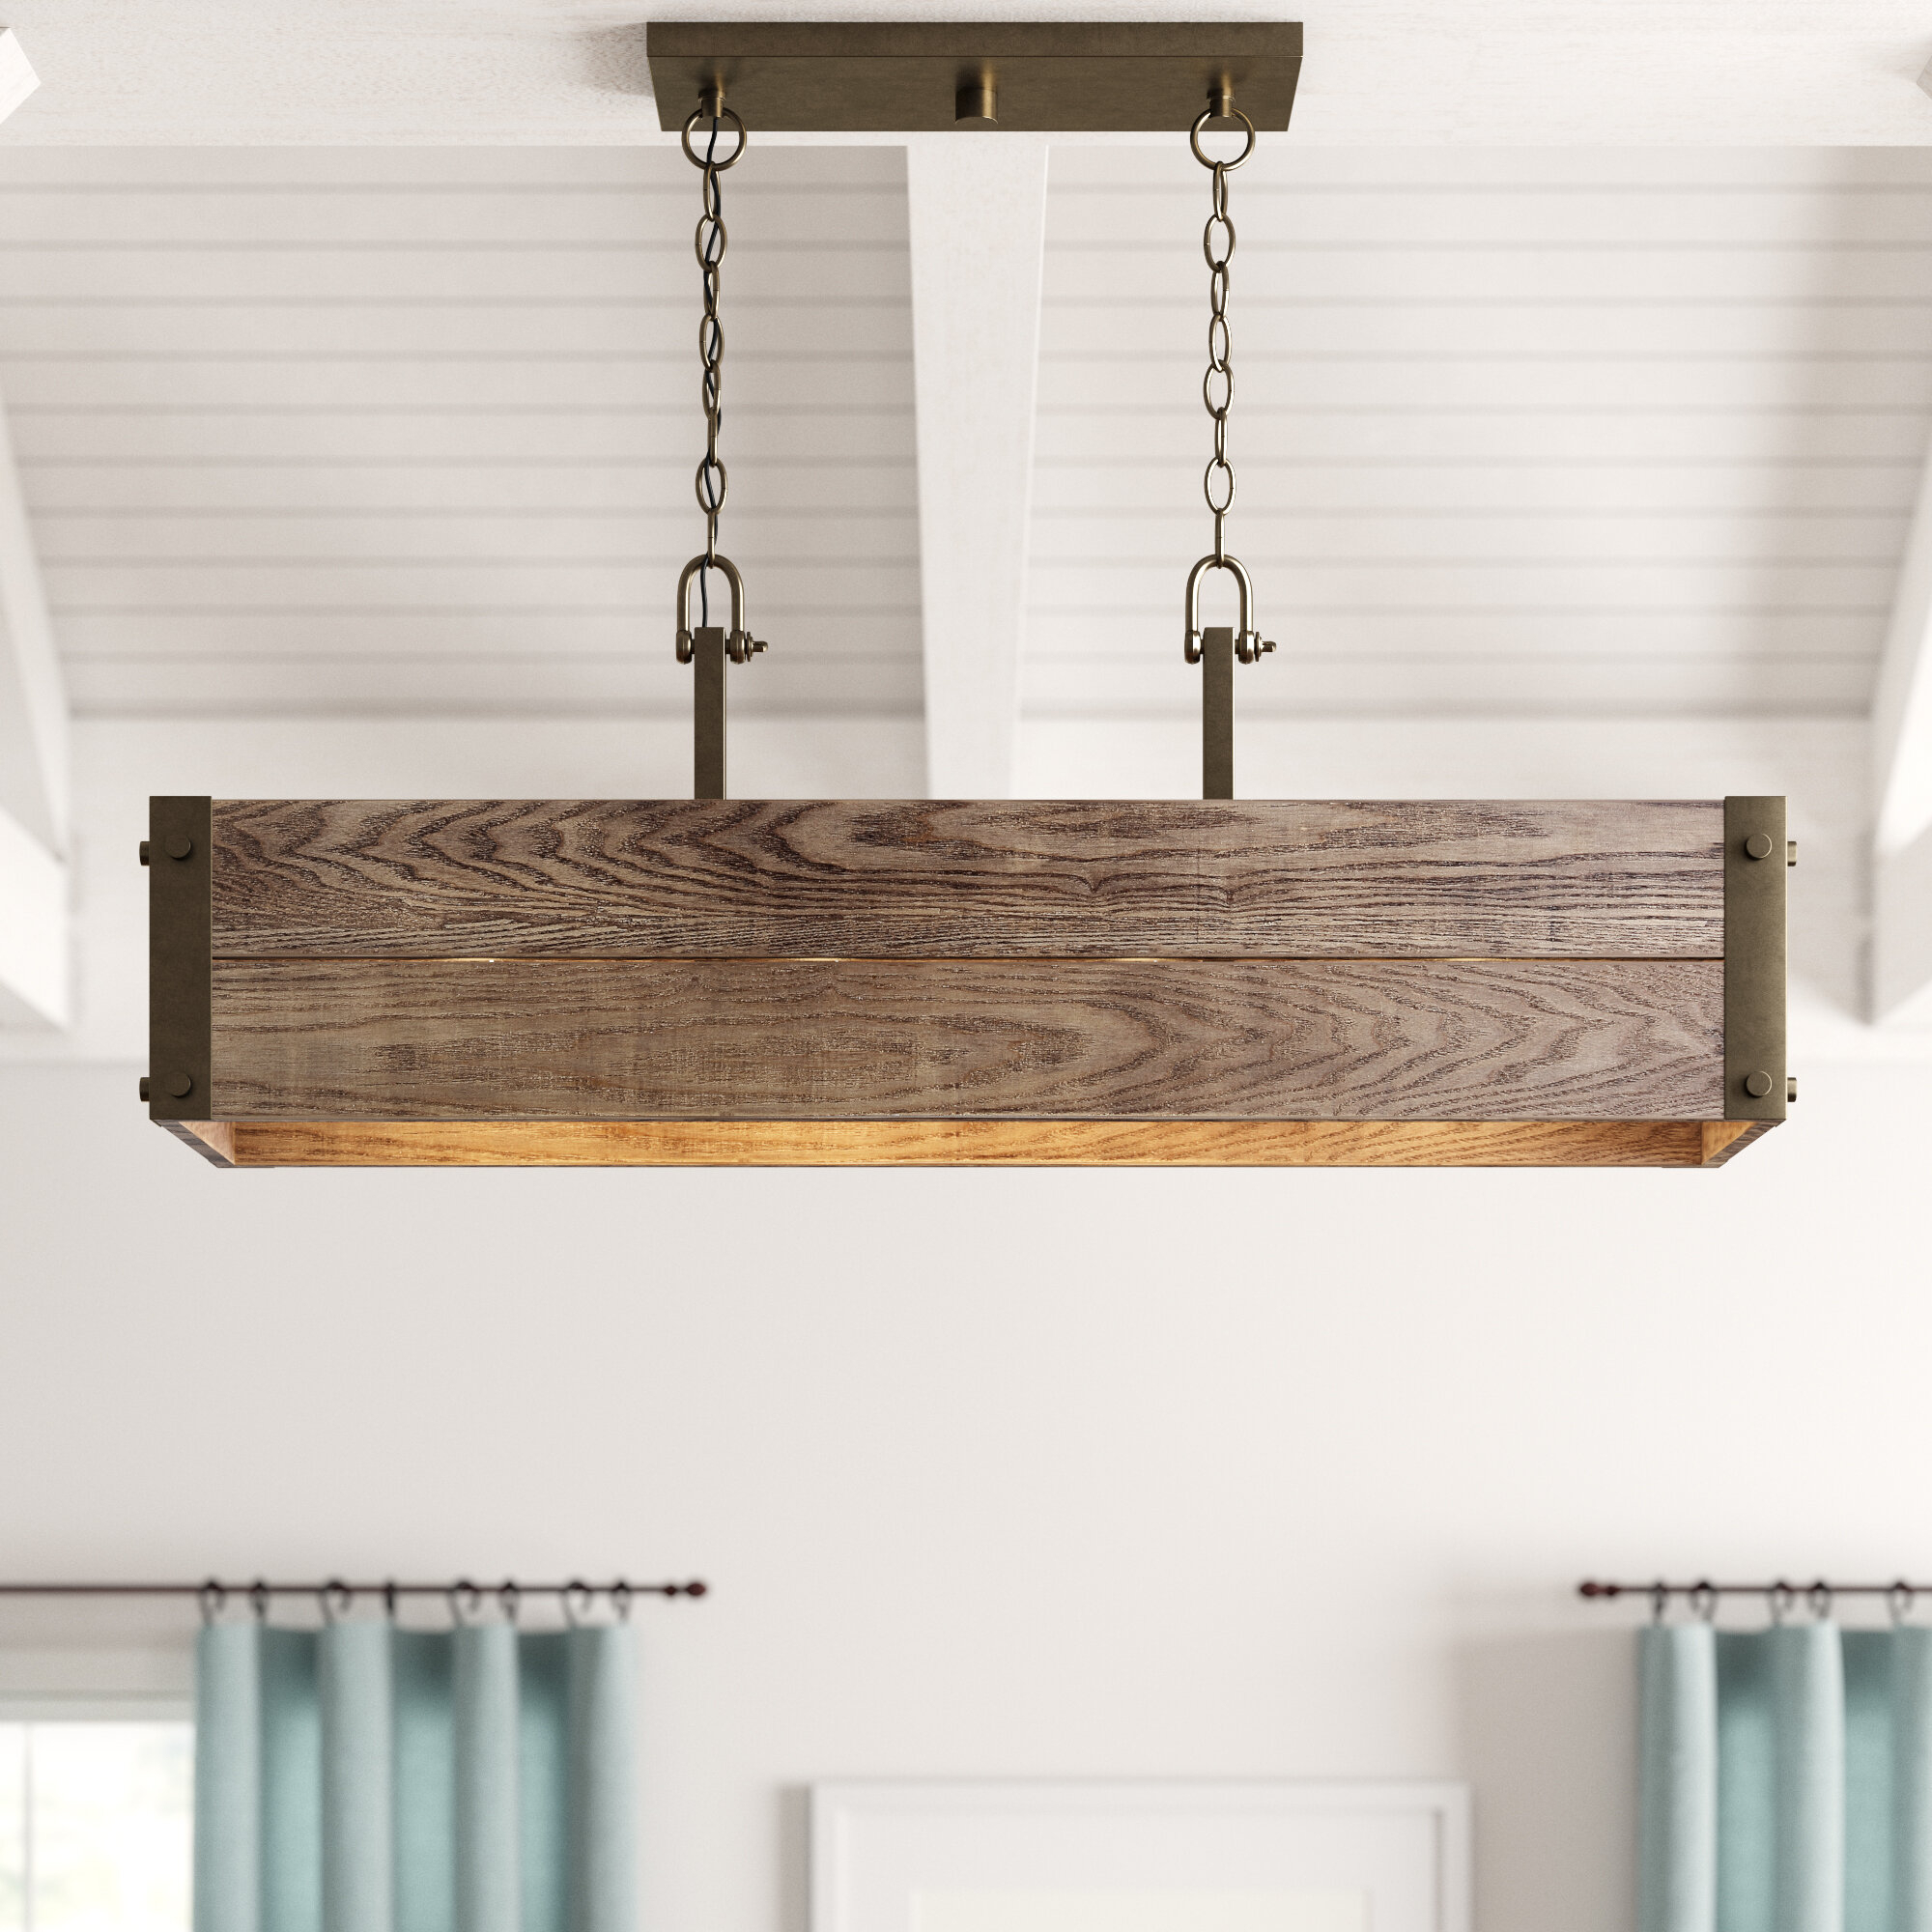 Cathey 4-Light Kitchen Island Linear Pendant with Ariel 2-Light Kitchen Island Dome Pendants (Image 14 of 30)